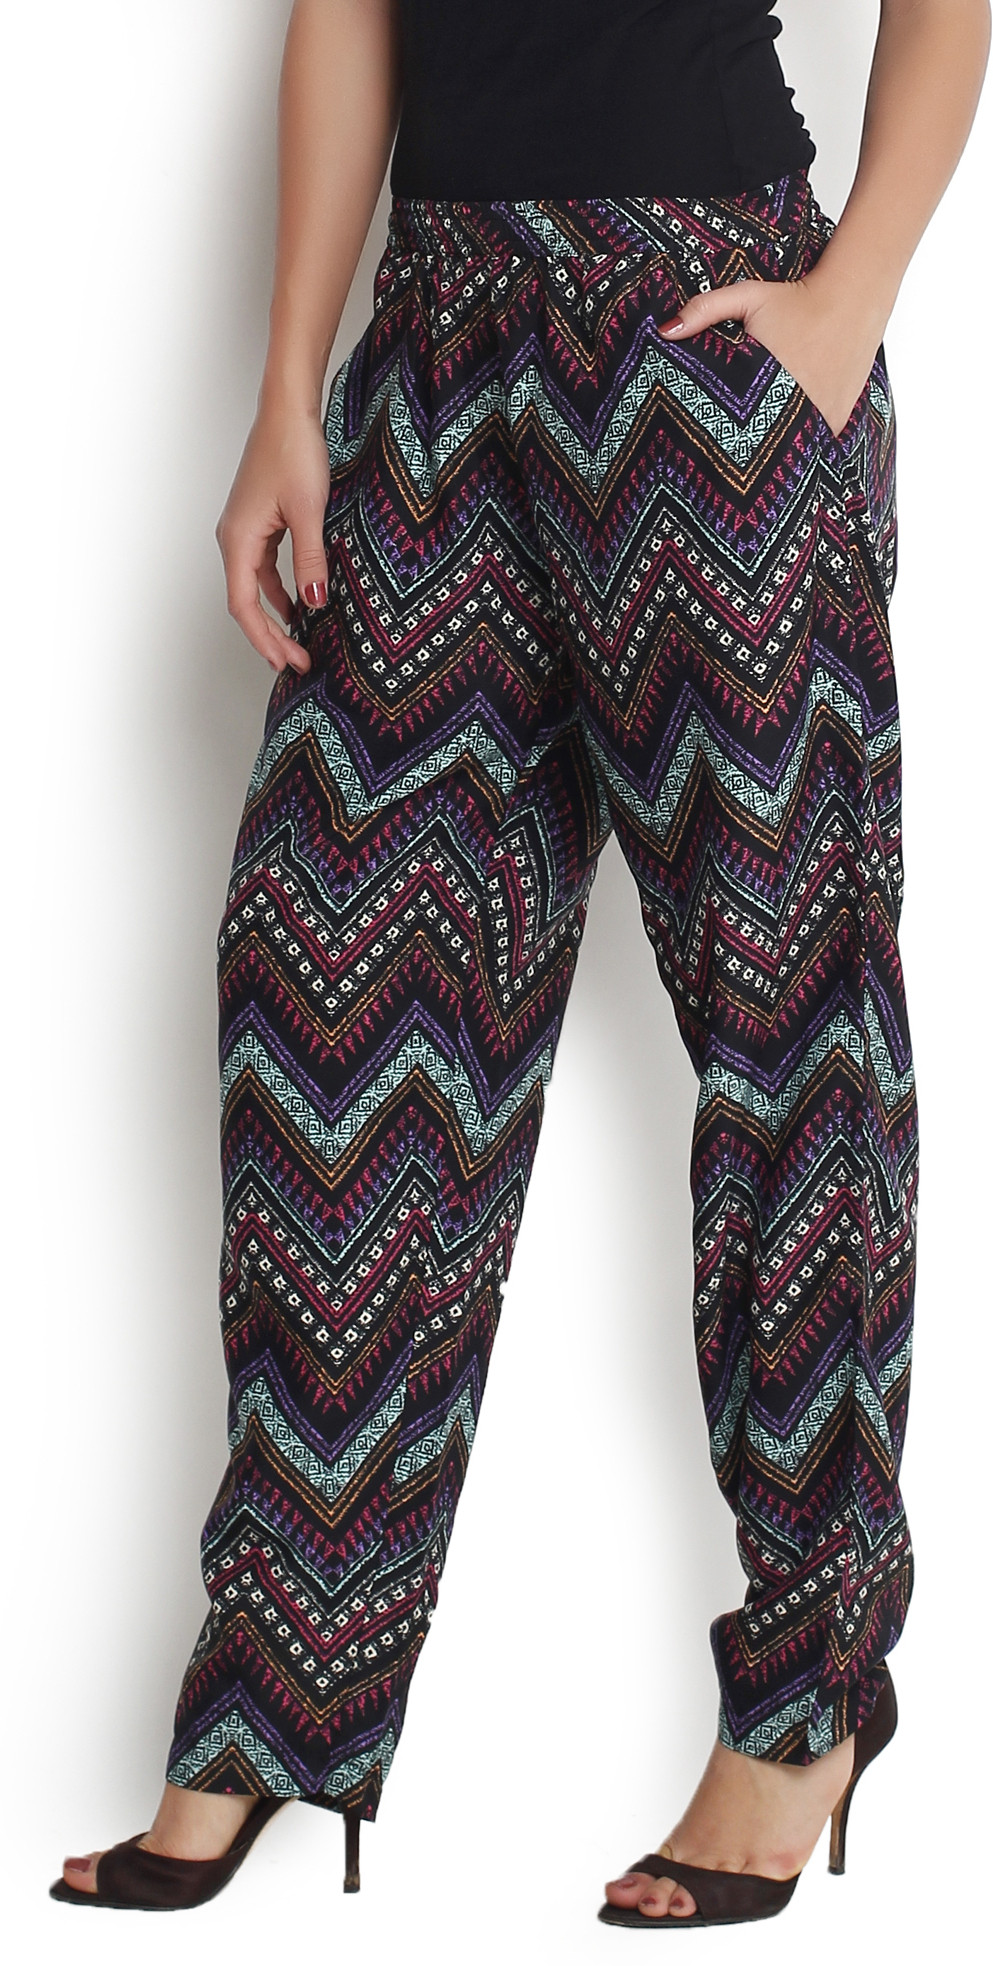 The Gud Look Printed Cotton Womens Harem Pants